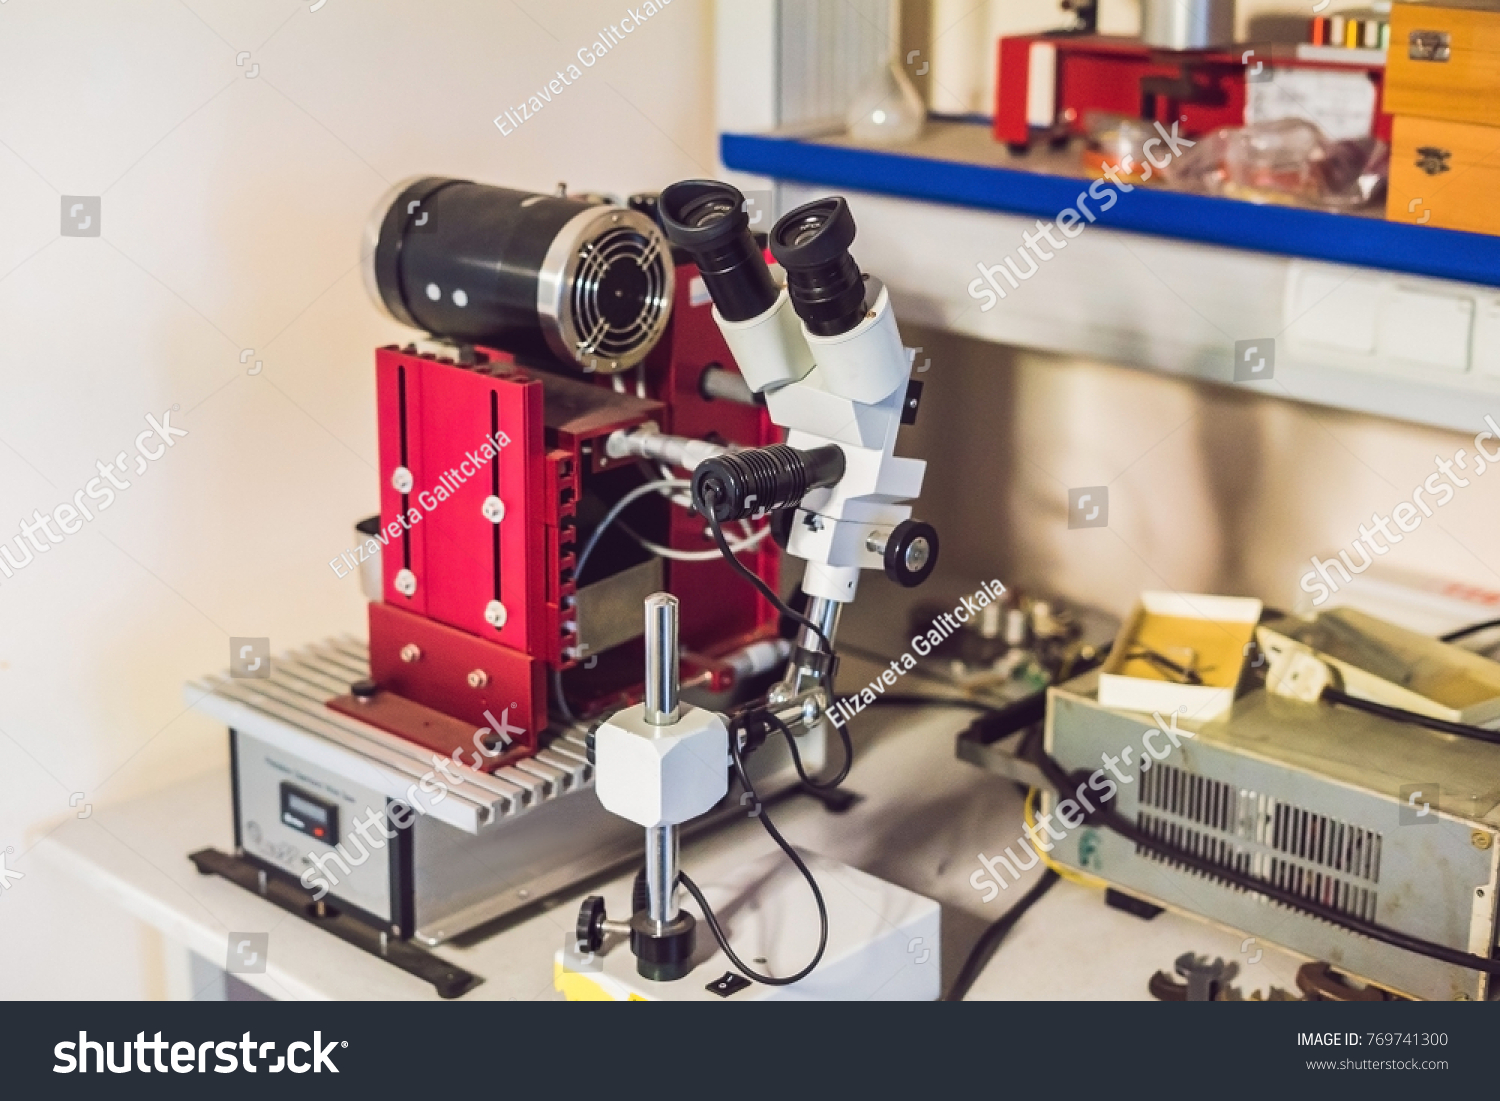 Diamond Wire Cutting Device Cutting Solid Stock Photo (Royalty Free ...